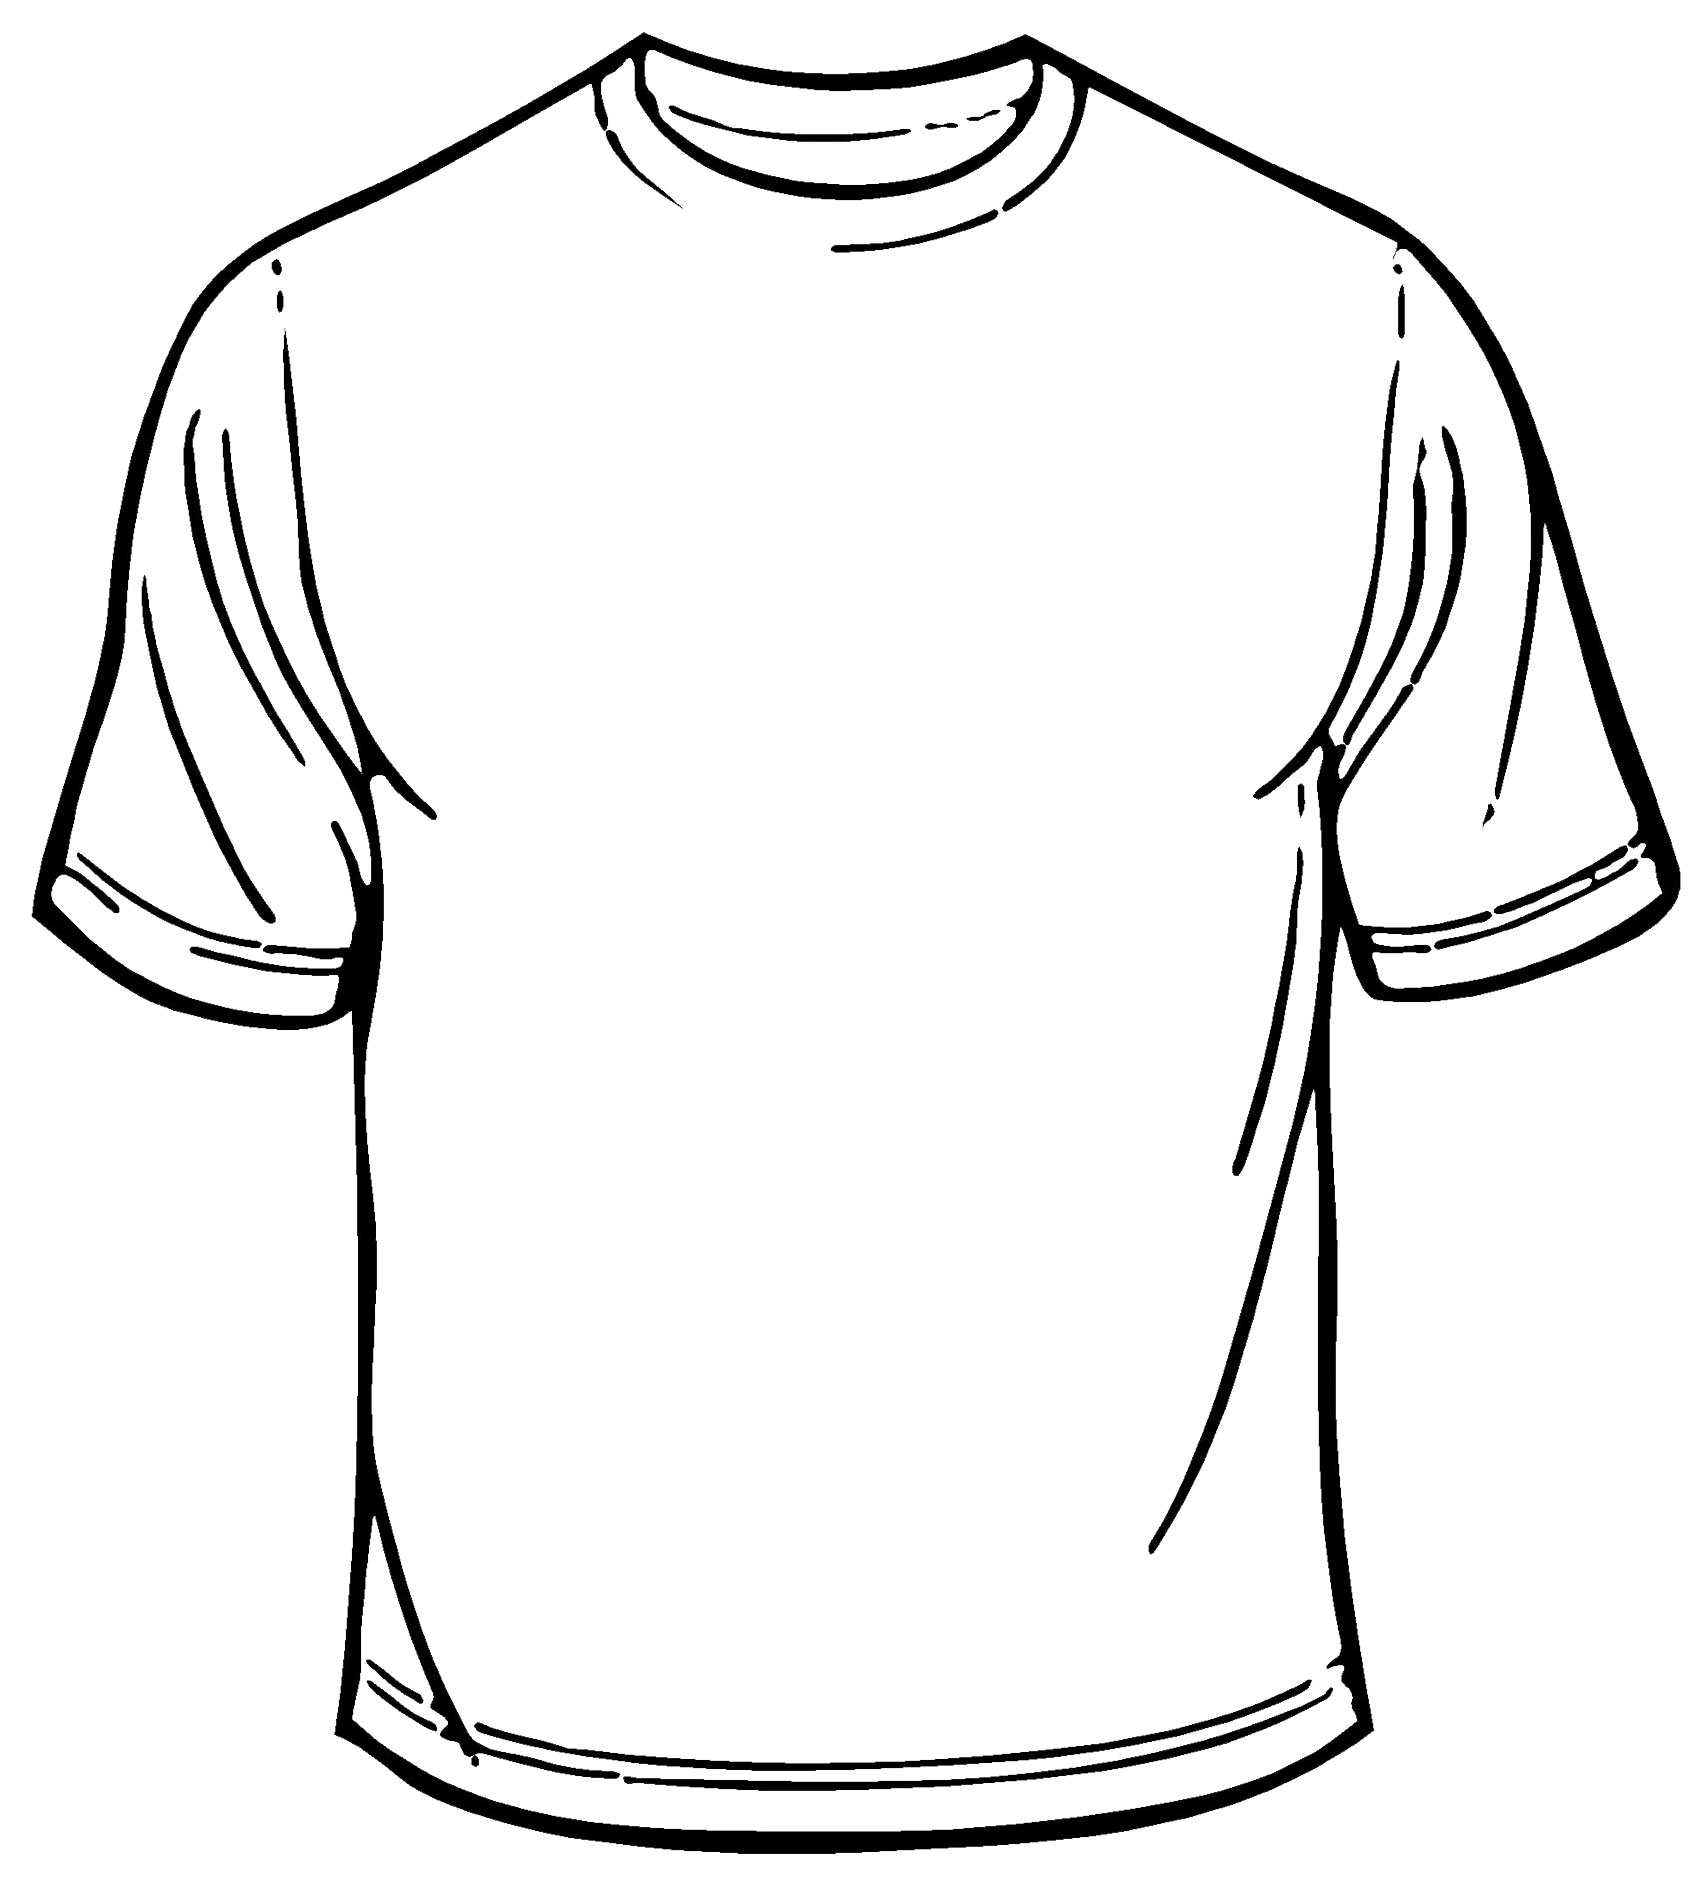 Blank T-shirt Outline #1663533 - Tshirt PNG Outline